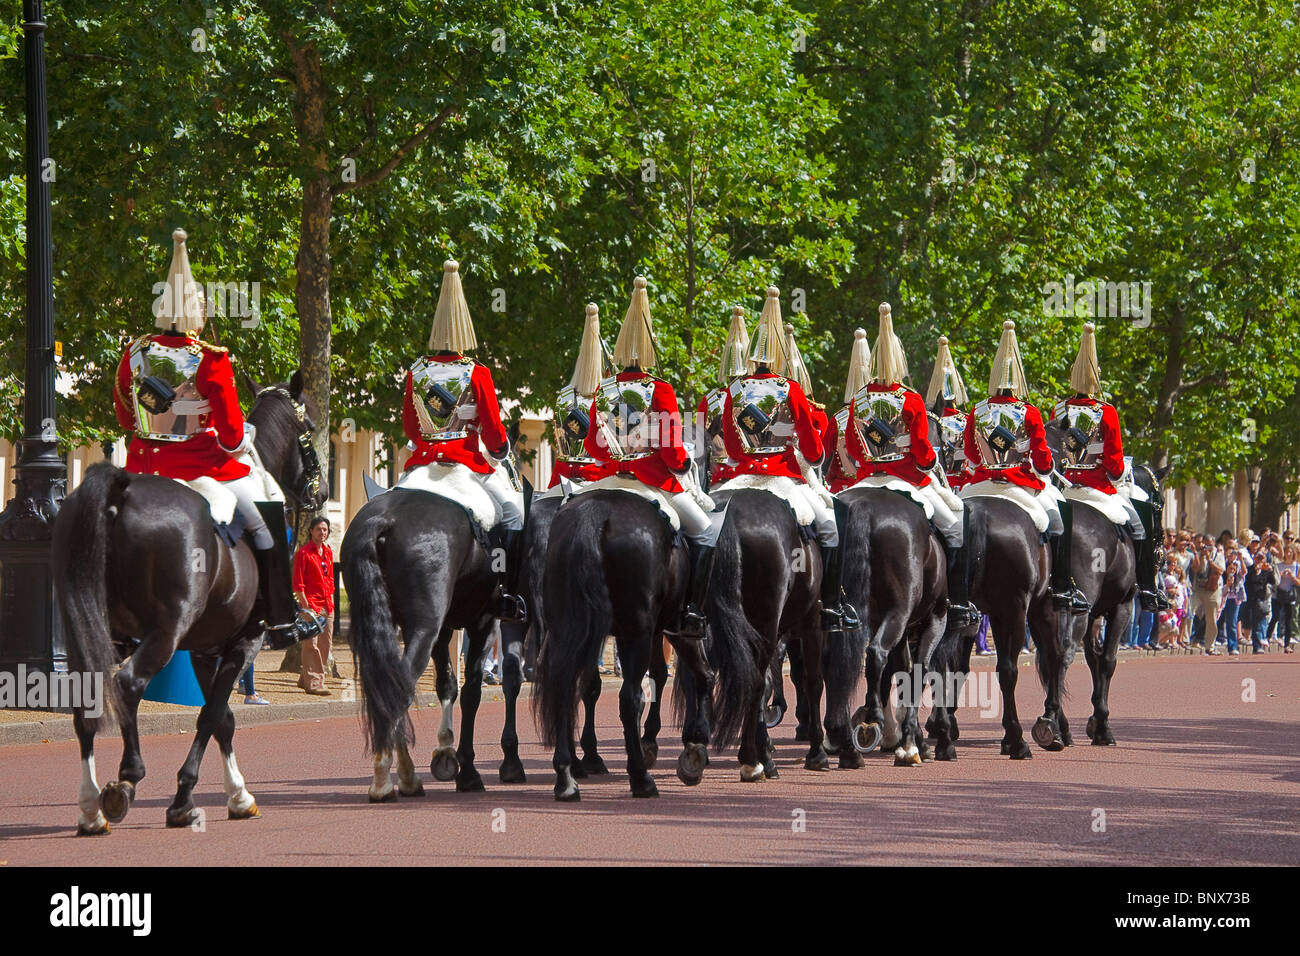 London Life Guards in the Mall July 2010 - Stock Image